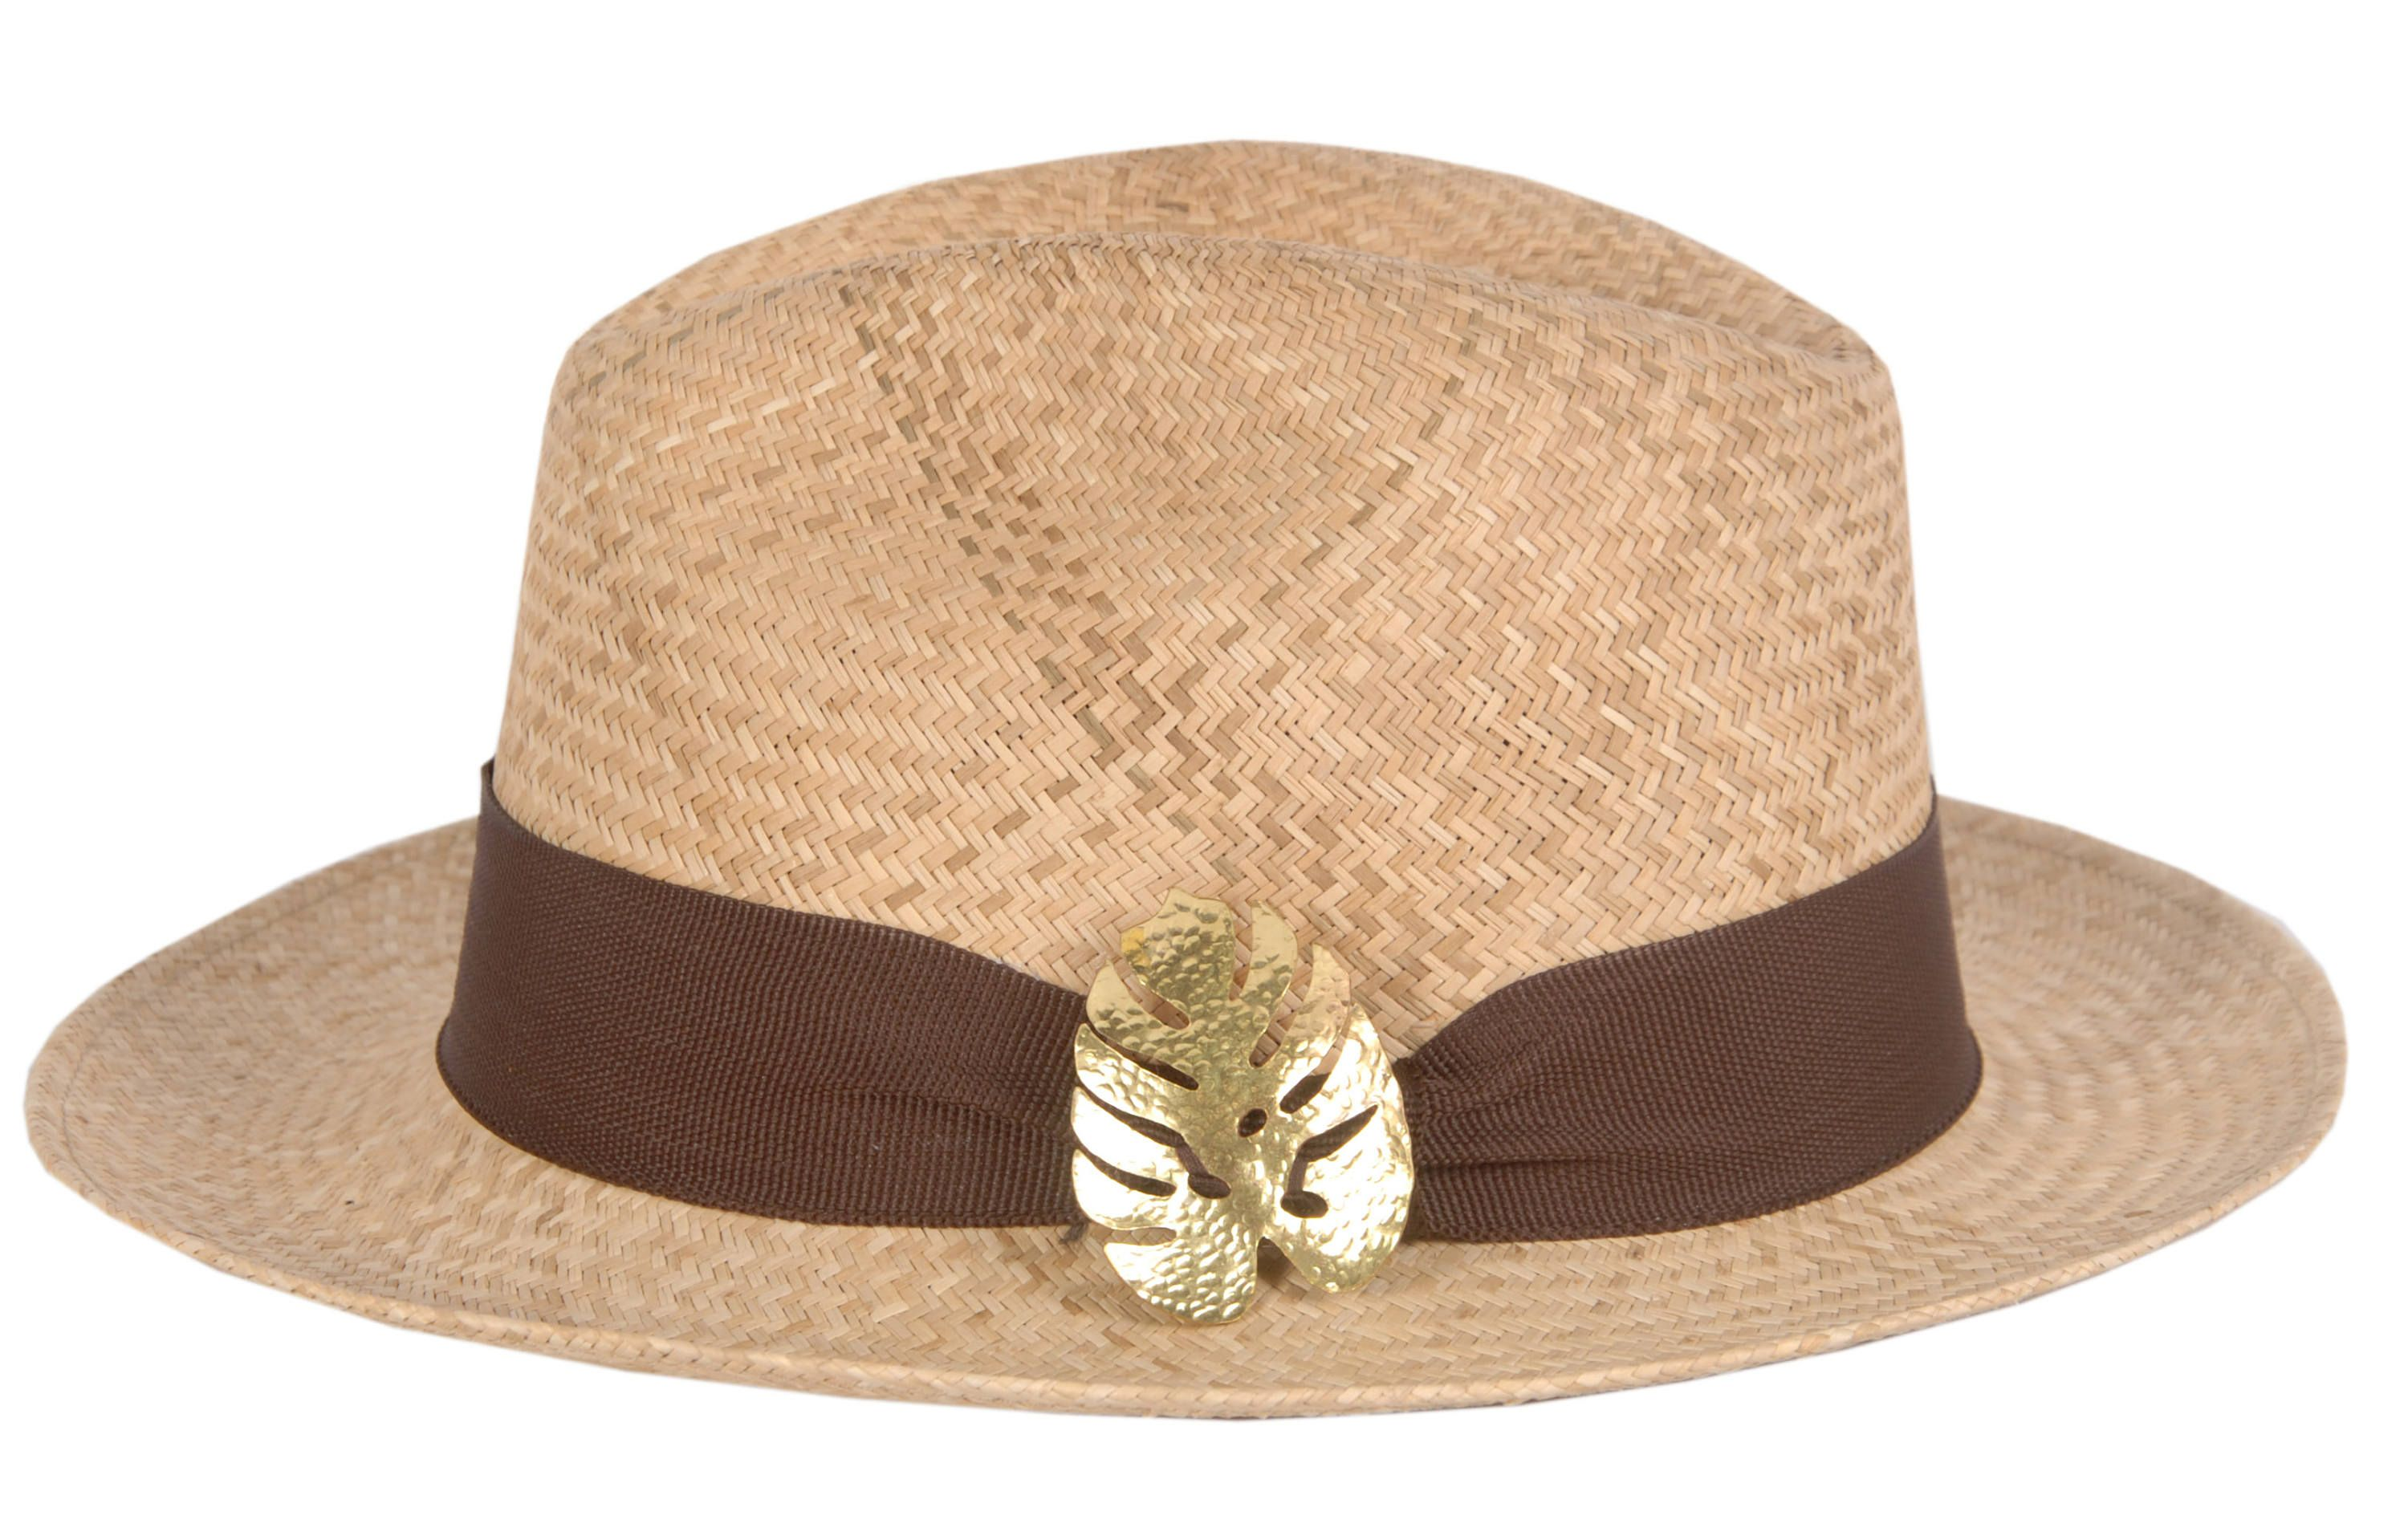 051bc82f074 Panama Hat - Classic - Hand Made - Iraca fiber palm - for women - With  Protection UPF50 +